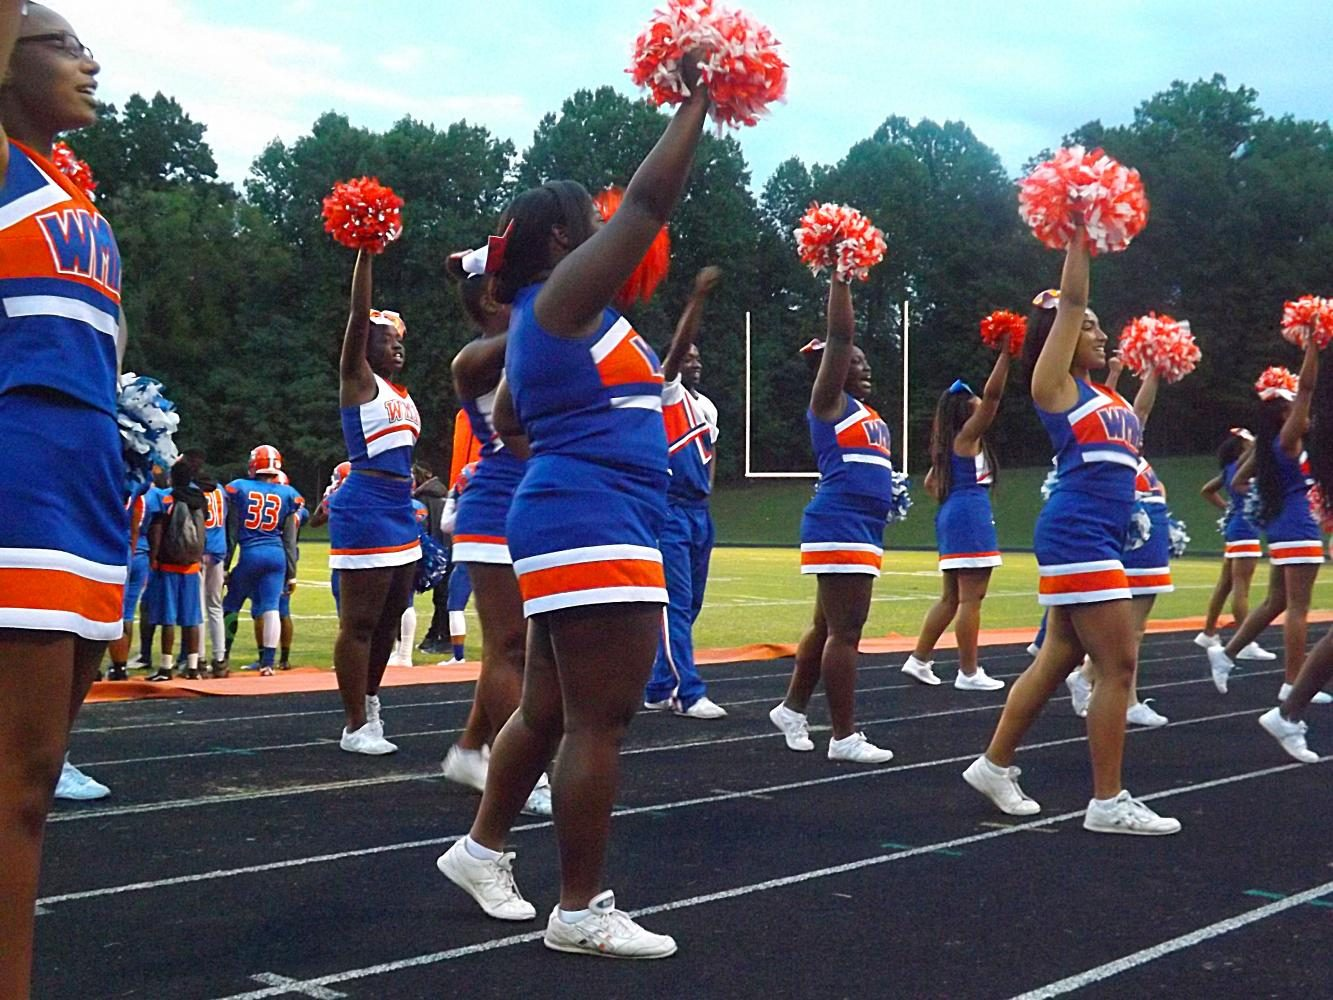 Cheerleaders+on+the+sidelines+at+the+football+opener+on+September+1.